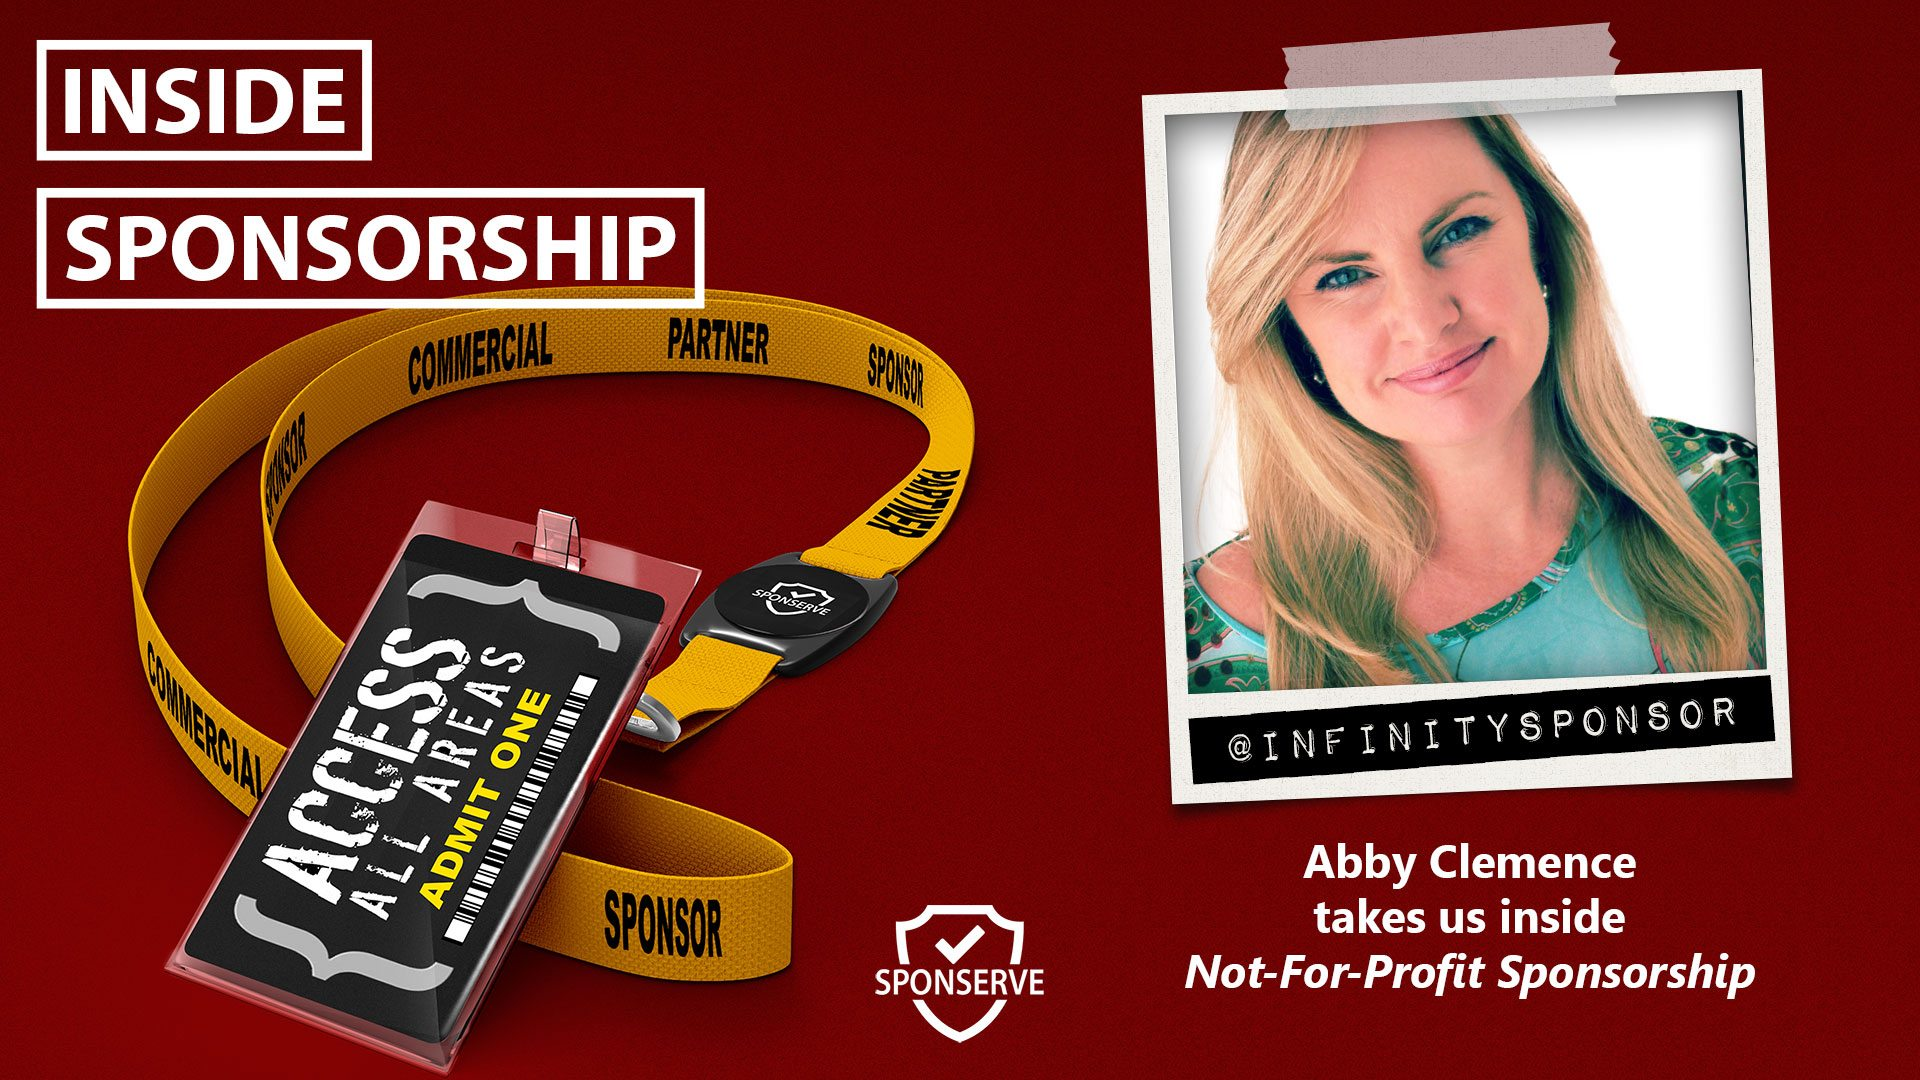 Inside Sponsorship - Abby Clemence - Not For Profit Sponsorship